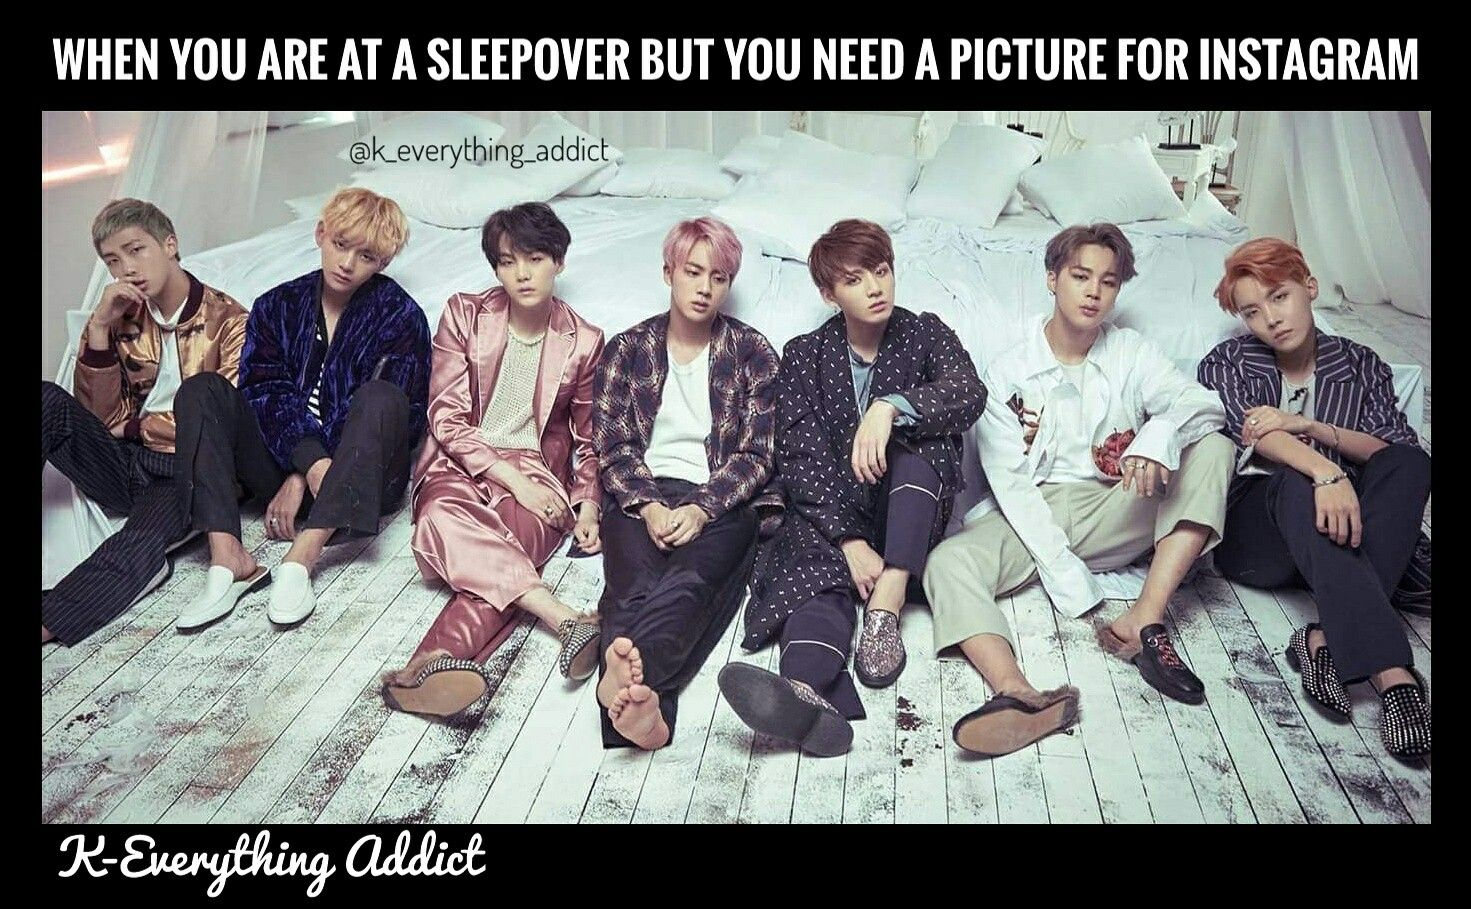 Funny Sleepover Meme : Always picture perfect bts btsmemes kpop funny memes